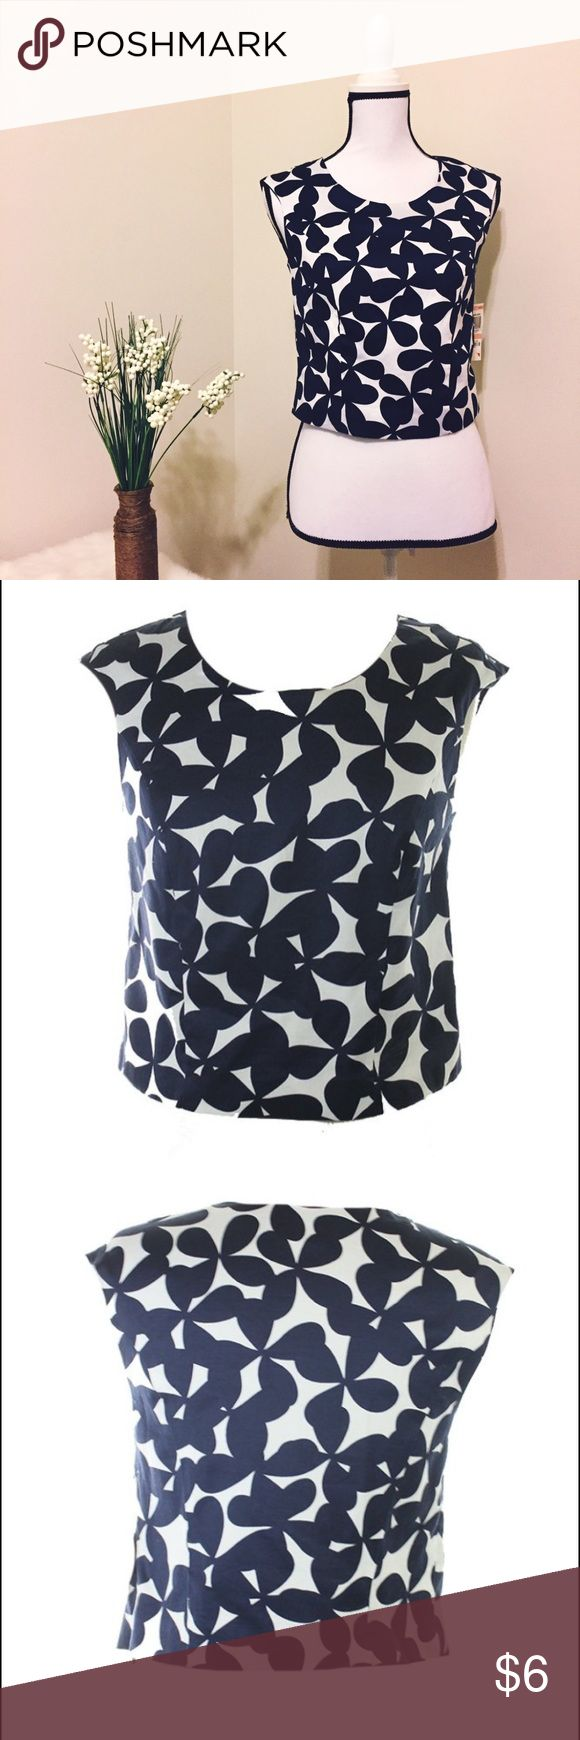 INC Butterfly Fields Crop Top Cute butterfly prints in navy blue and white crop top. New! INC International Concepts Tops Crop Tops